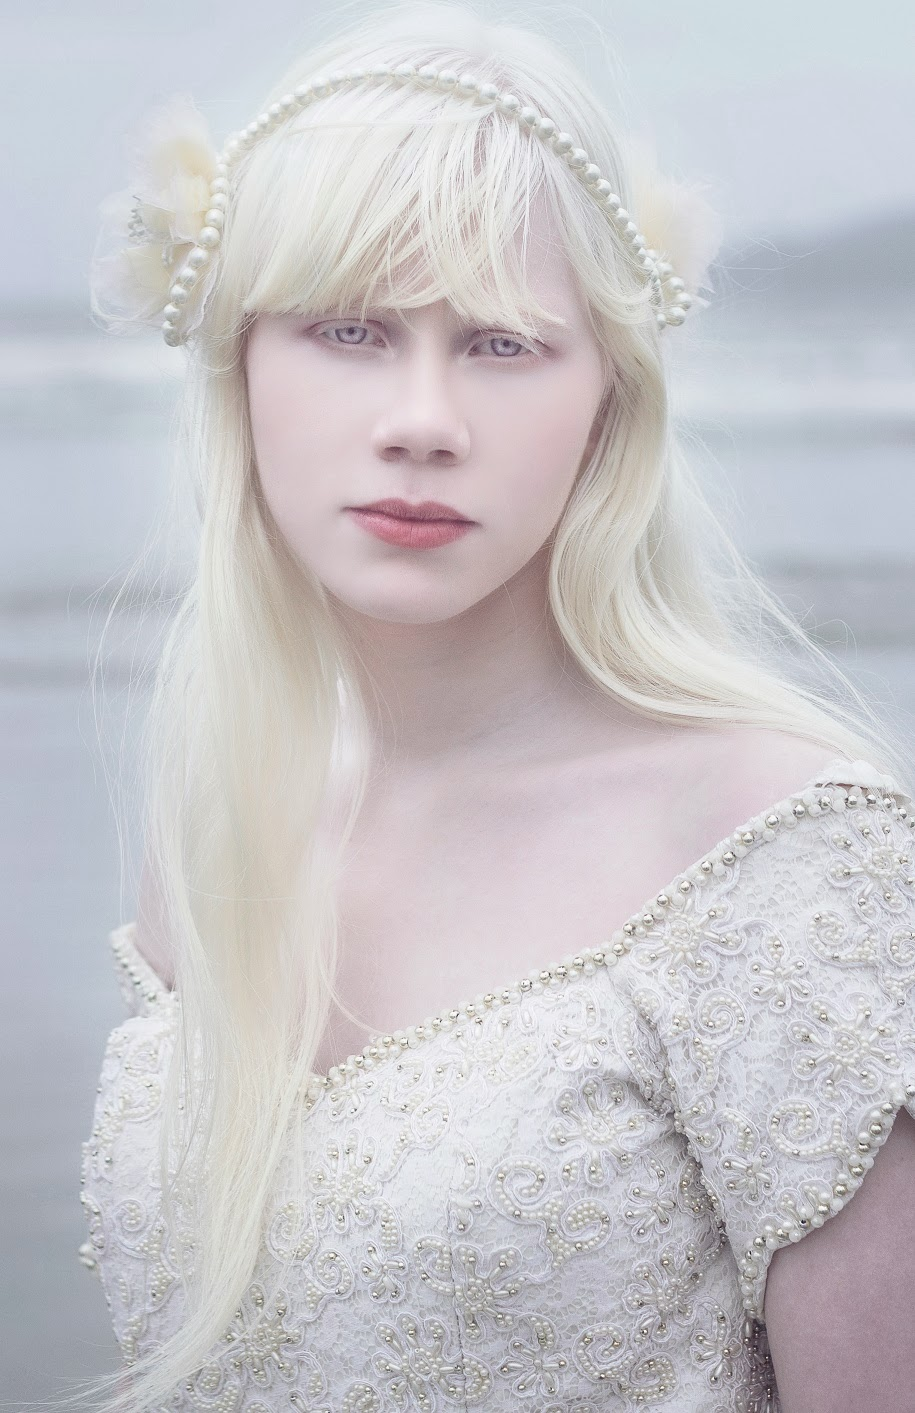 albino-pale beauty= on Pinterest : Albino Model, Albinism and Shaun ...